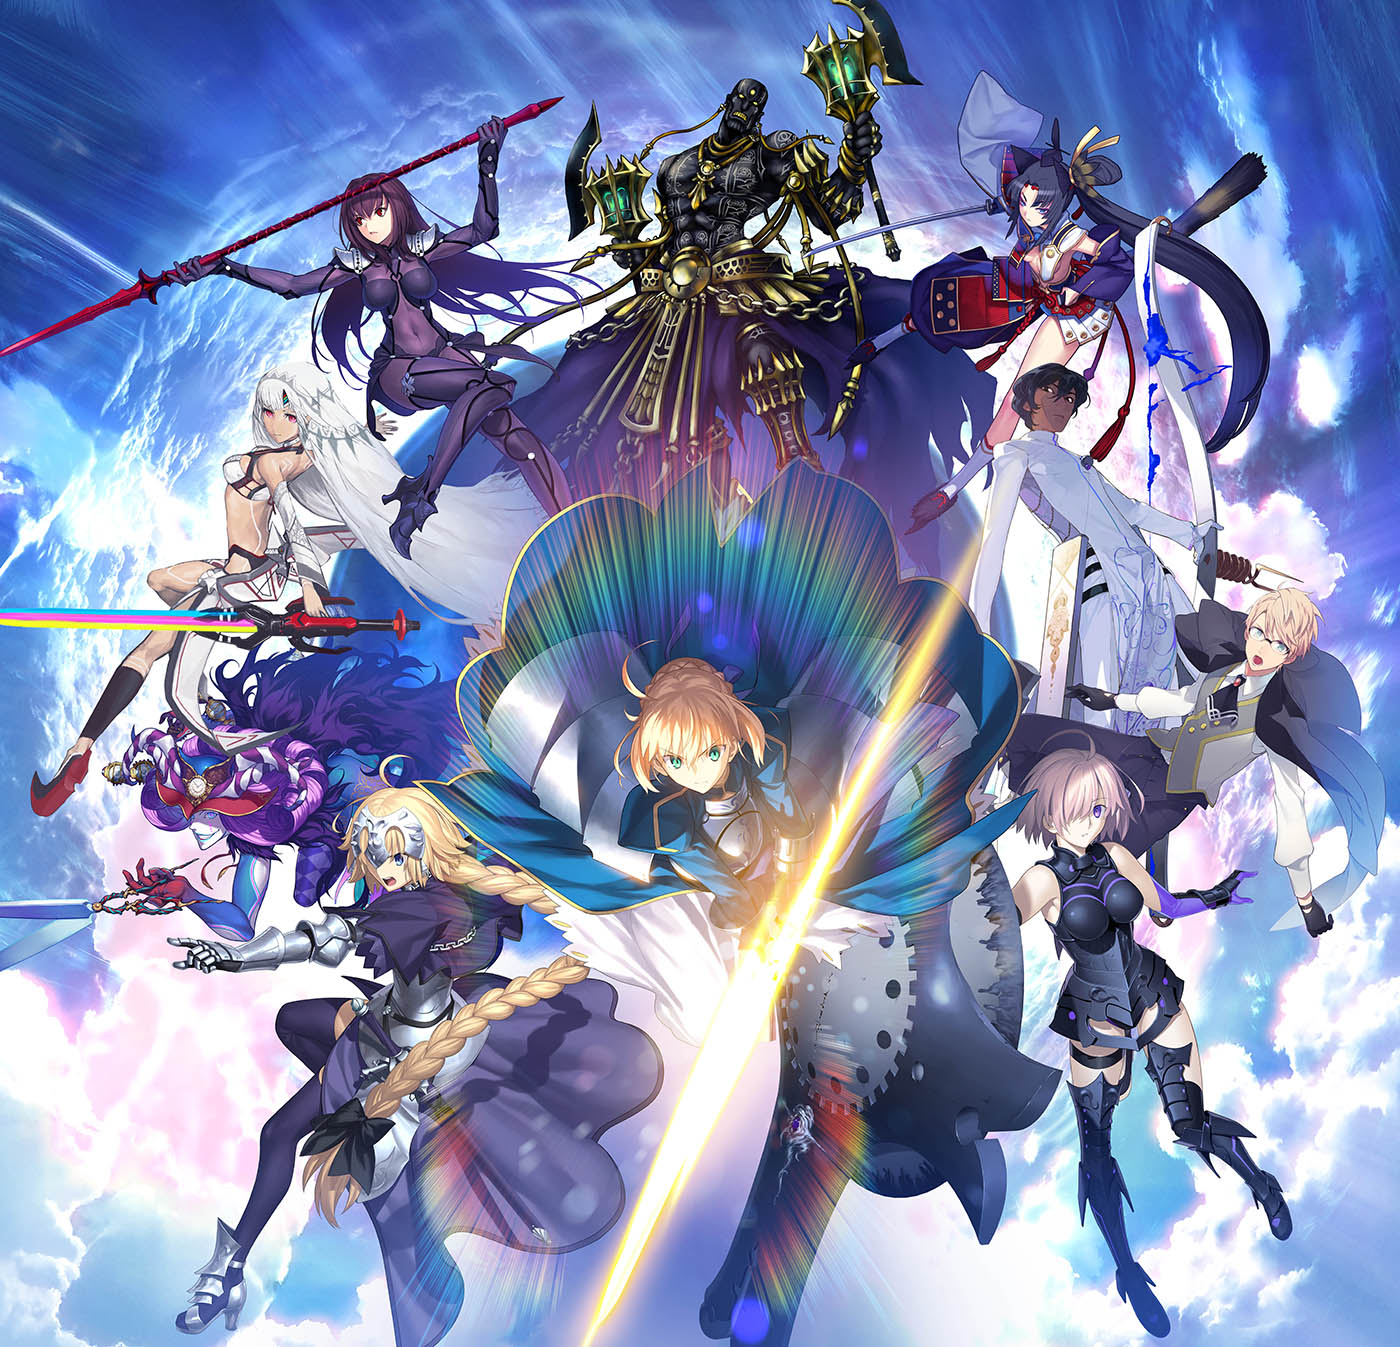 Fate Grand Order Wallpapers Anime Hq Fate Grand Order Pictures